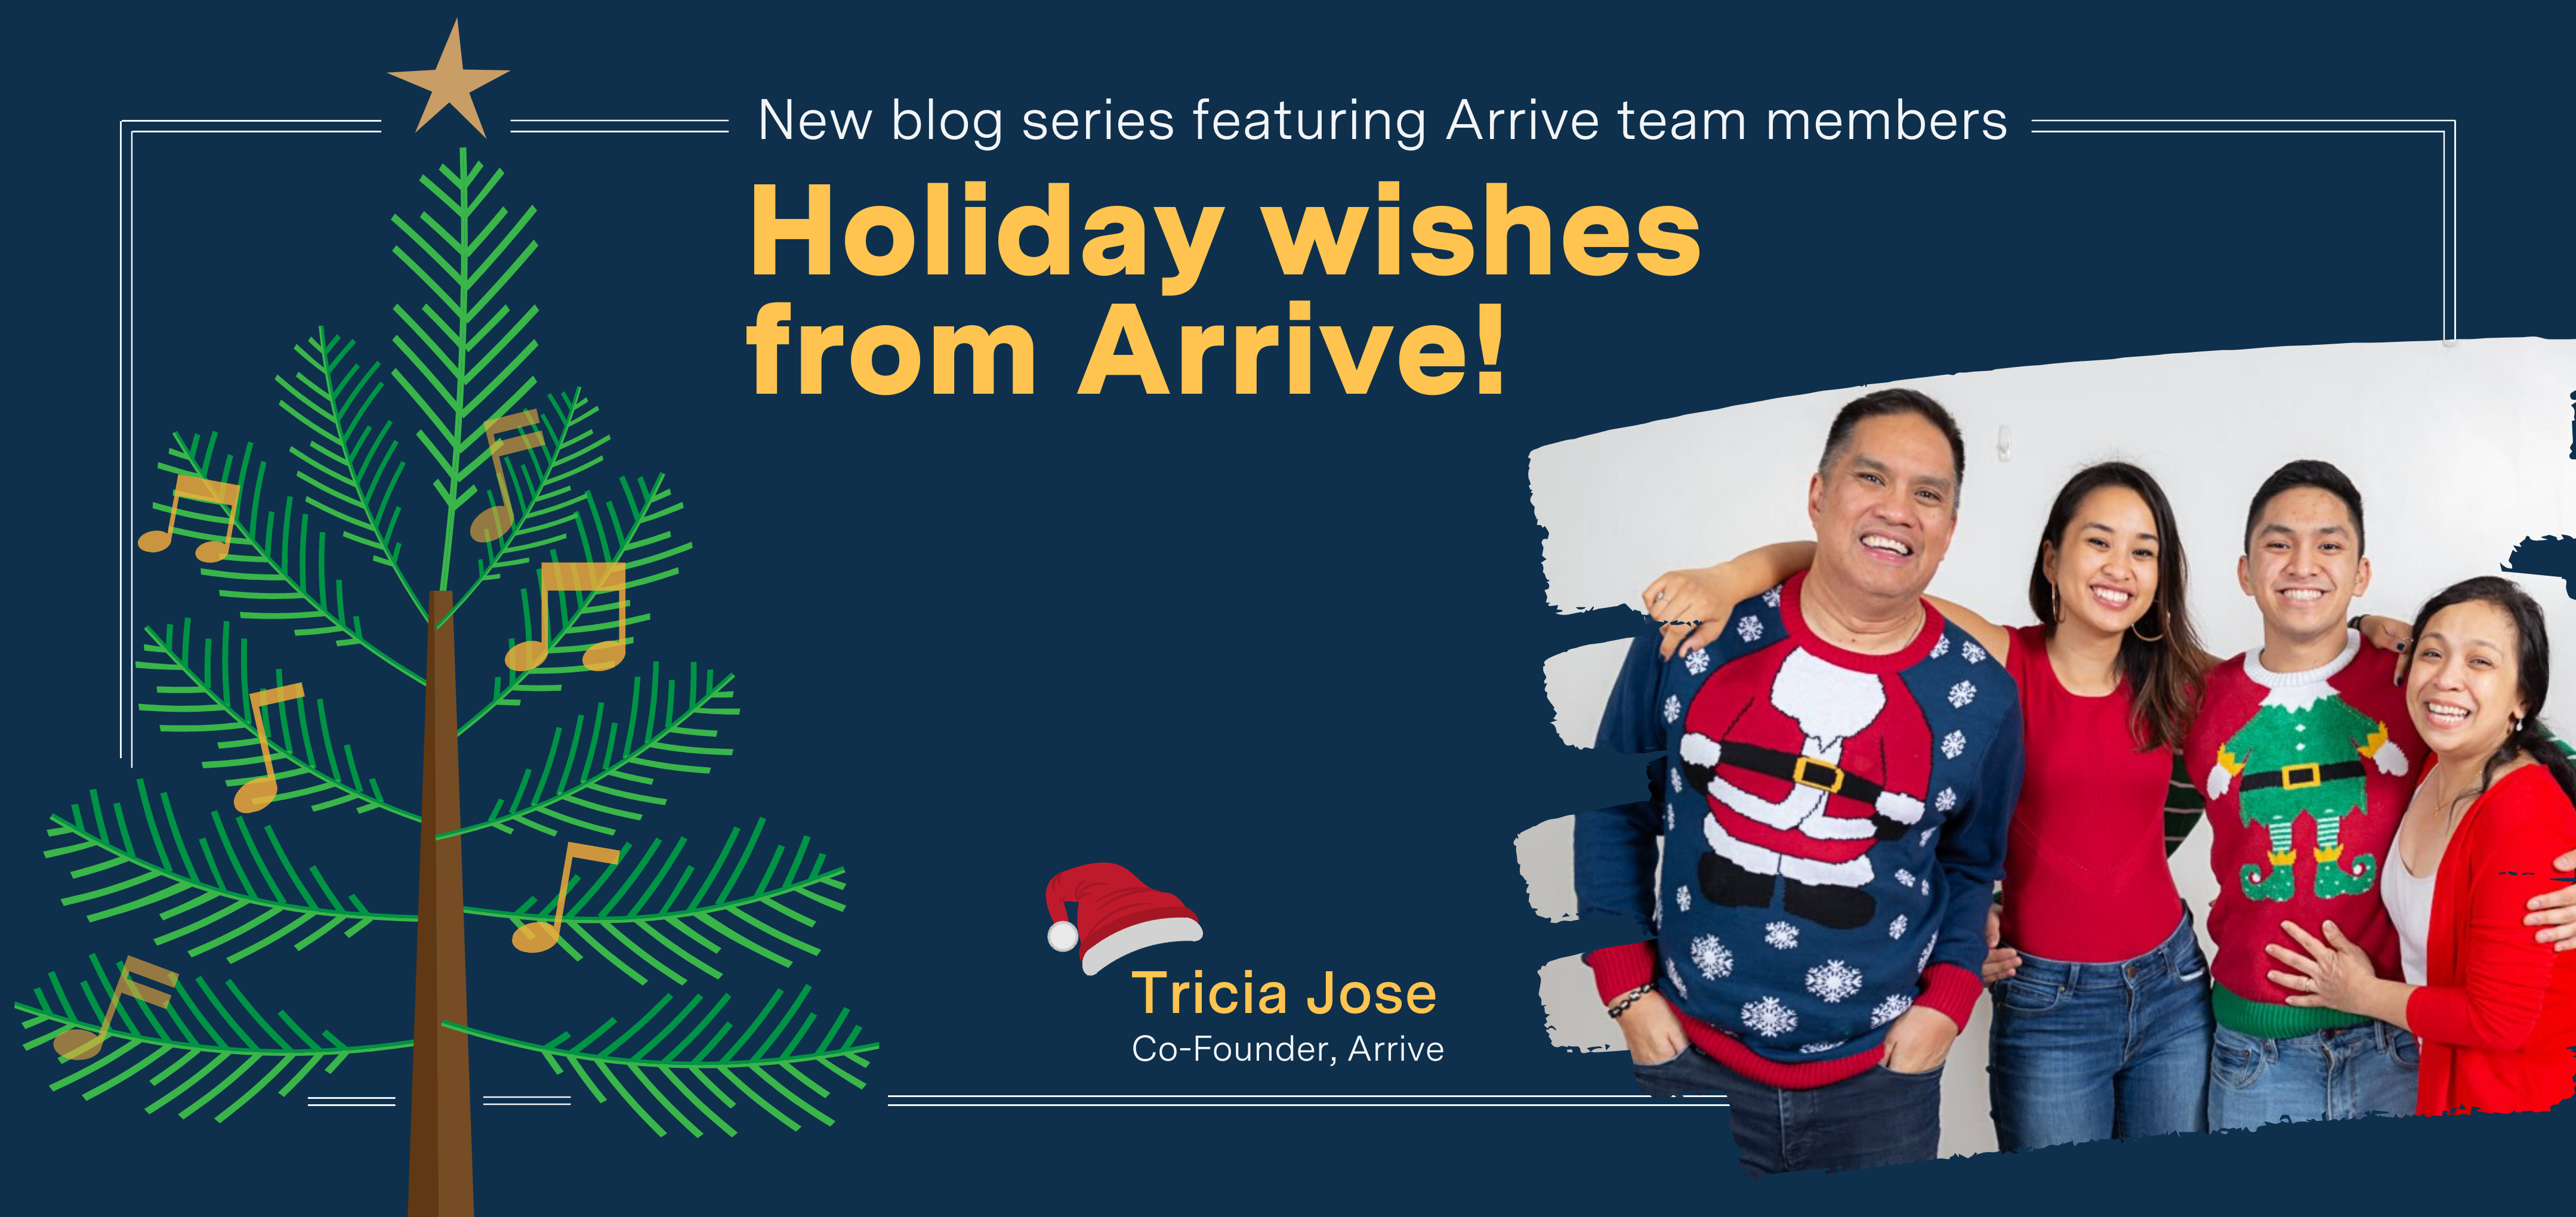 Holiday wishes from Arrive: Meet Tricia Jose